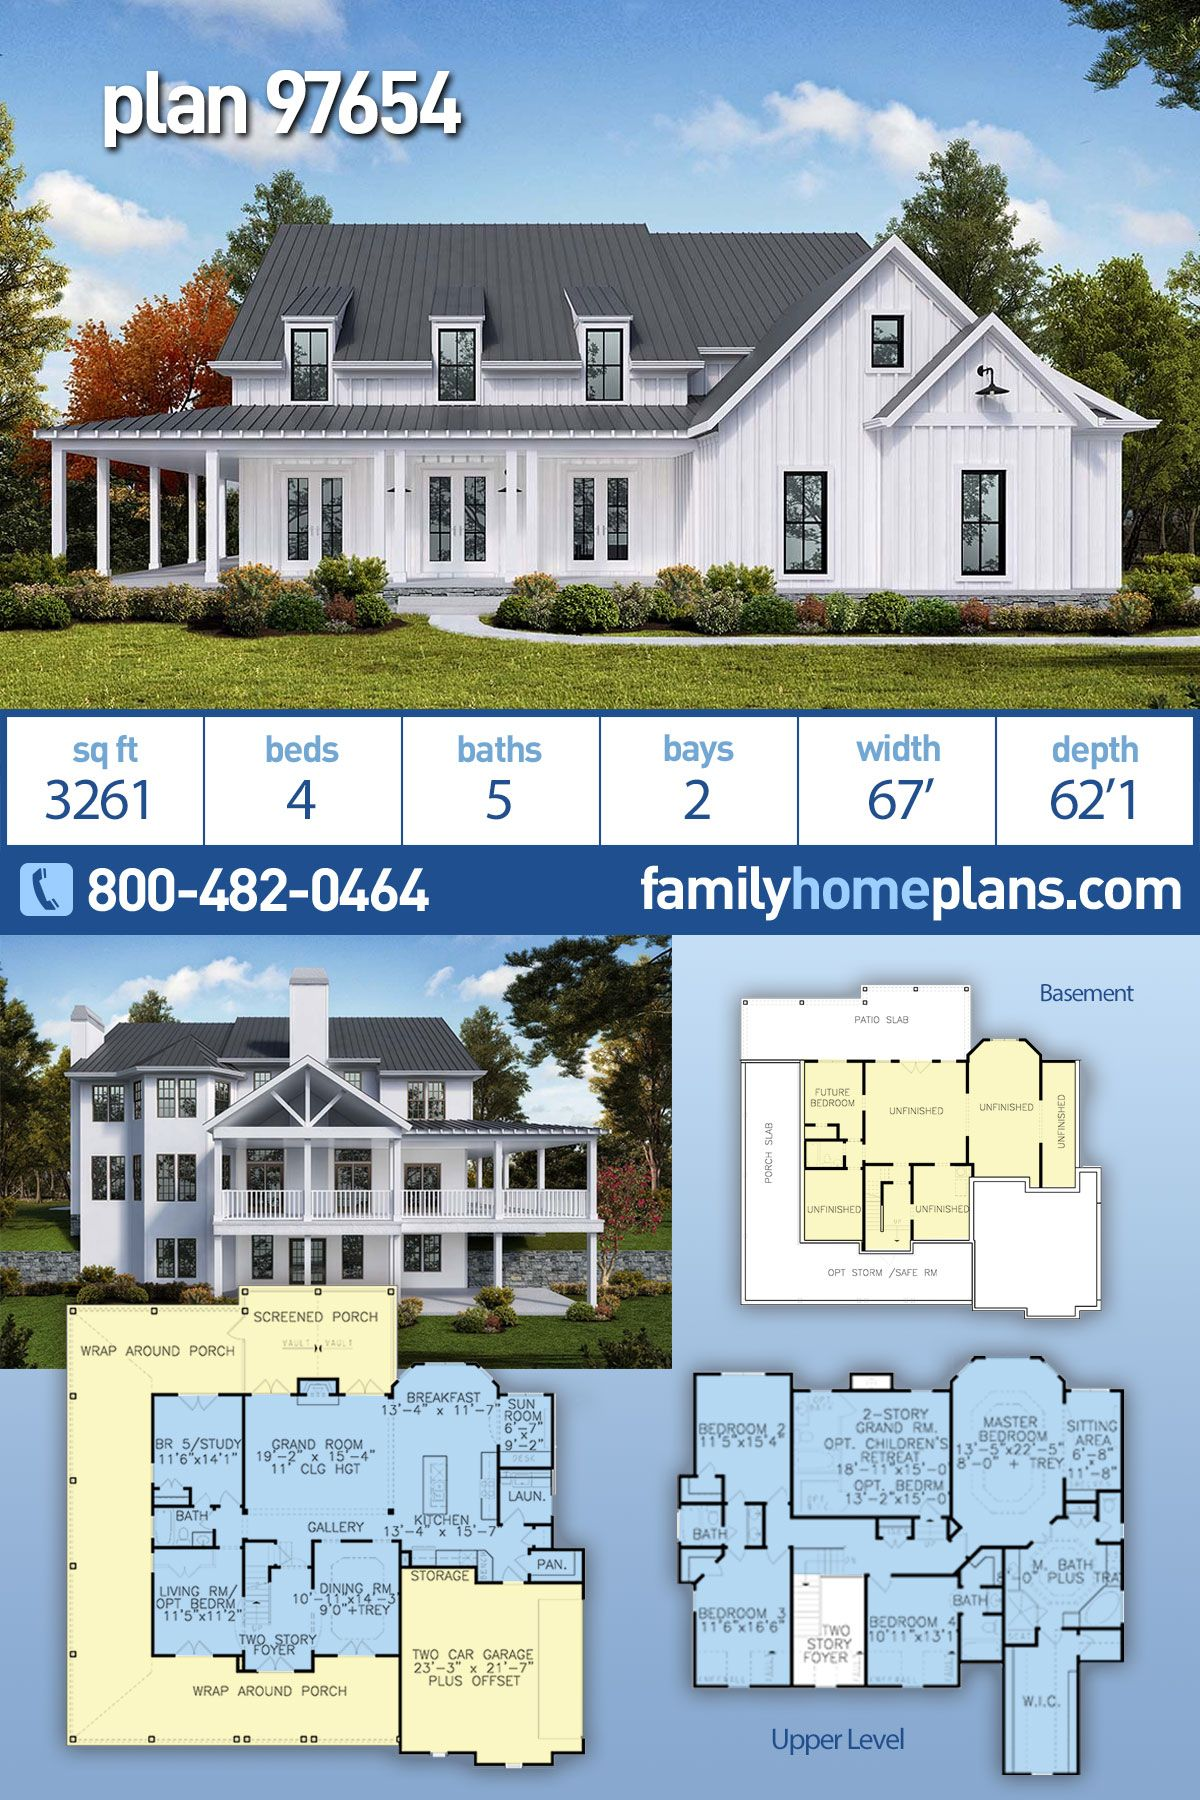 Southern Style House Plan 97654 With 4 Bed 5 Bath 2 Car Garage In 2020 Farmhouse Plans House Plans Farmhouse House Plans